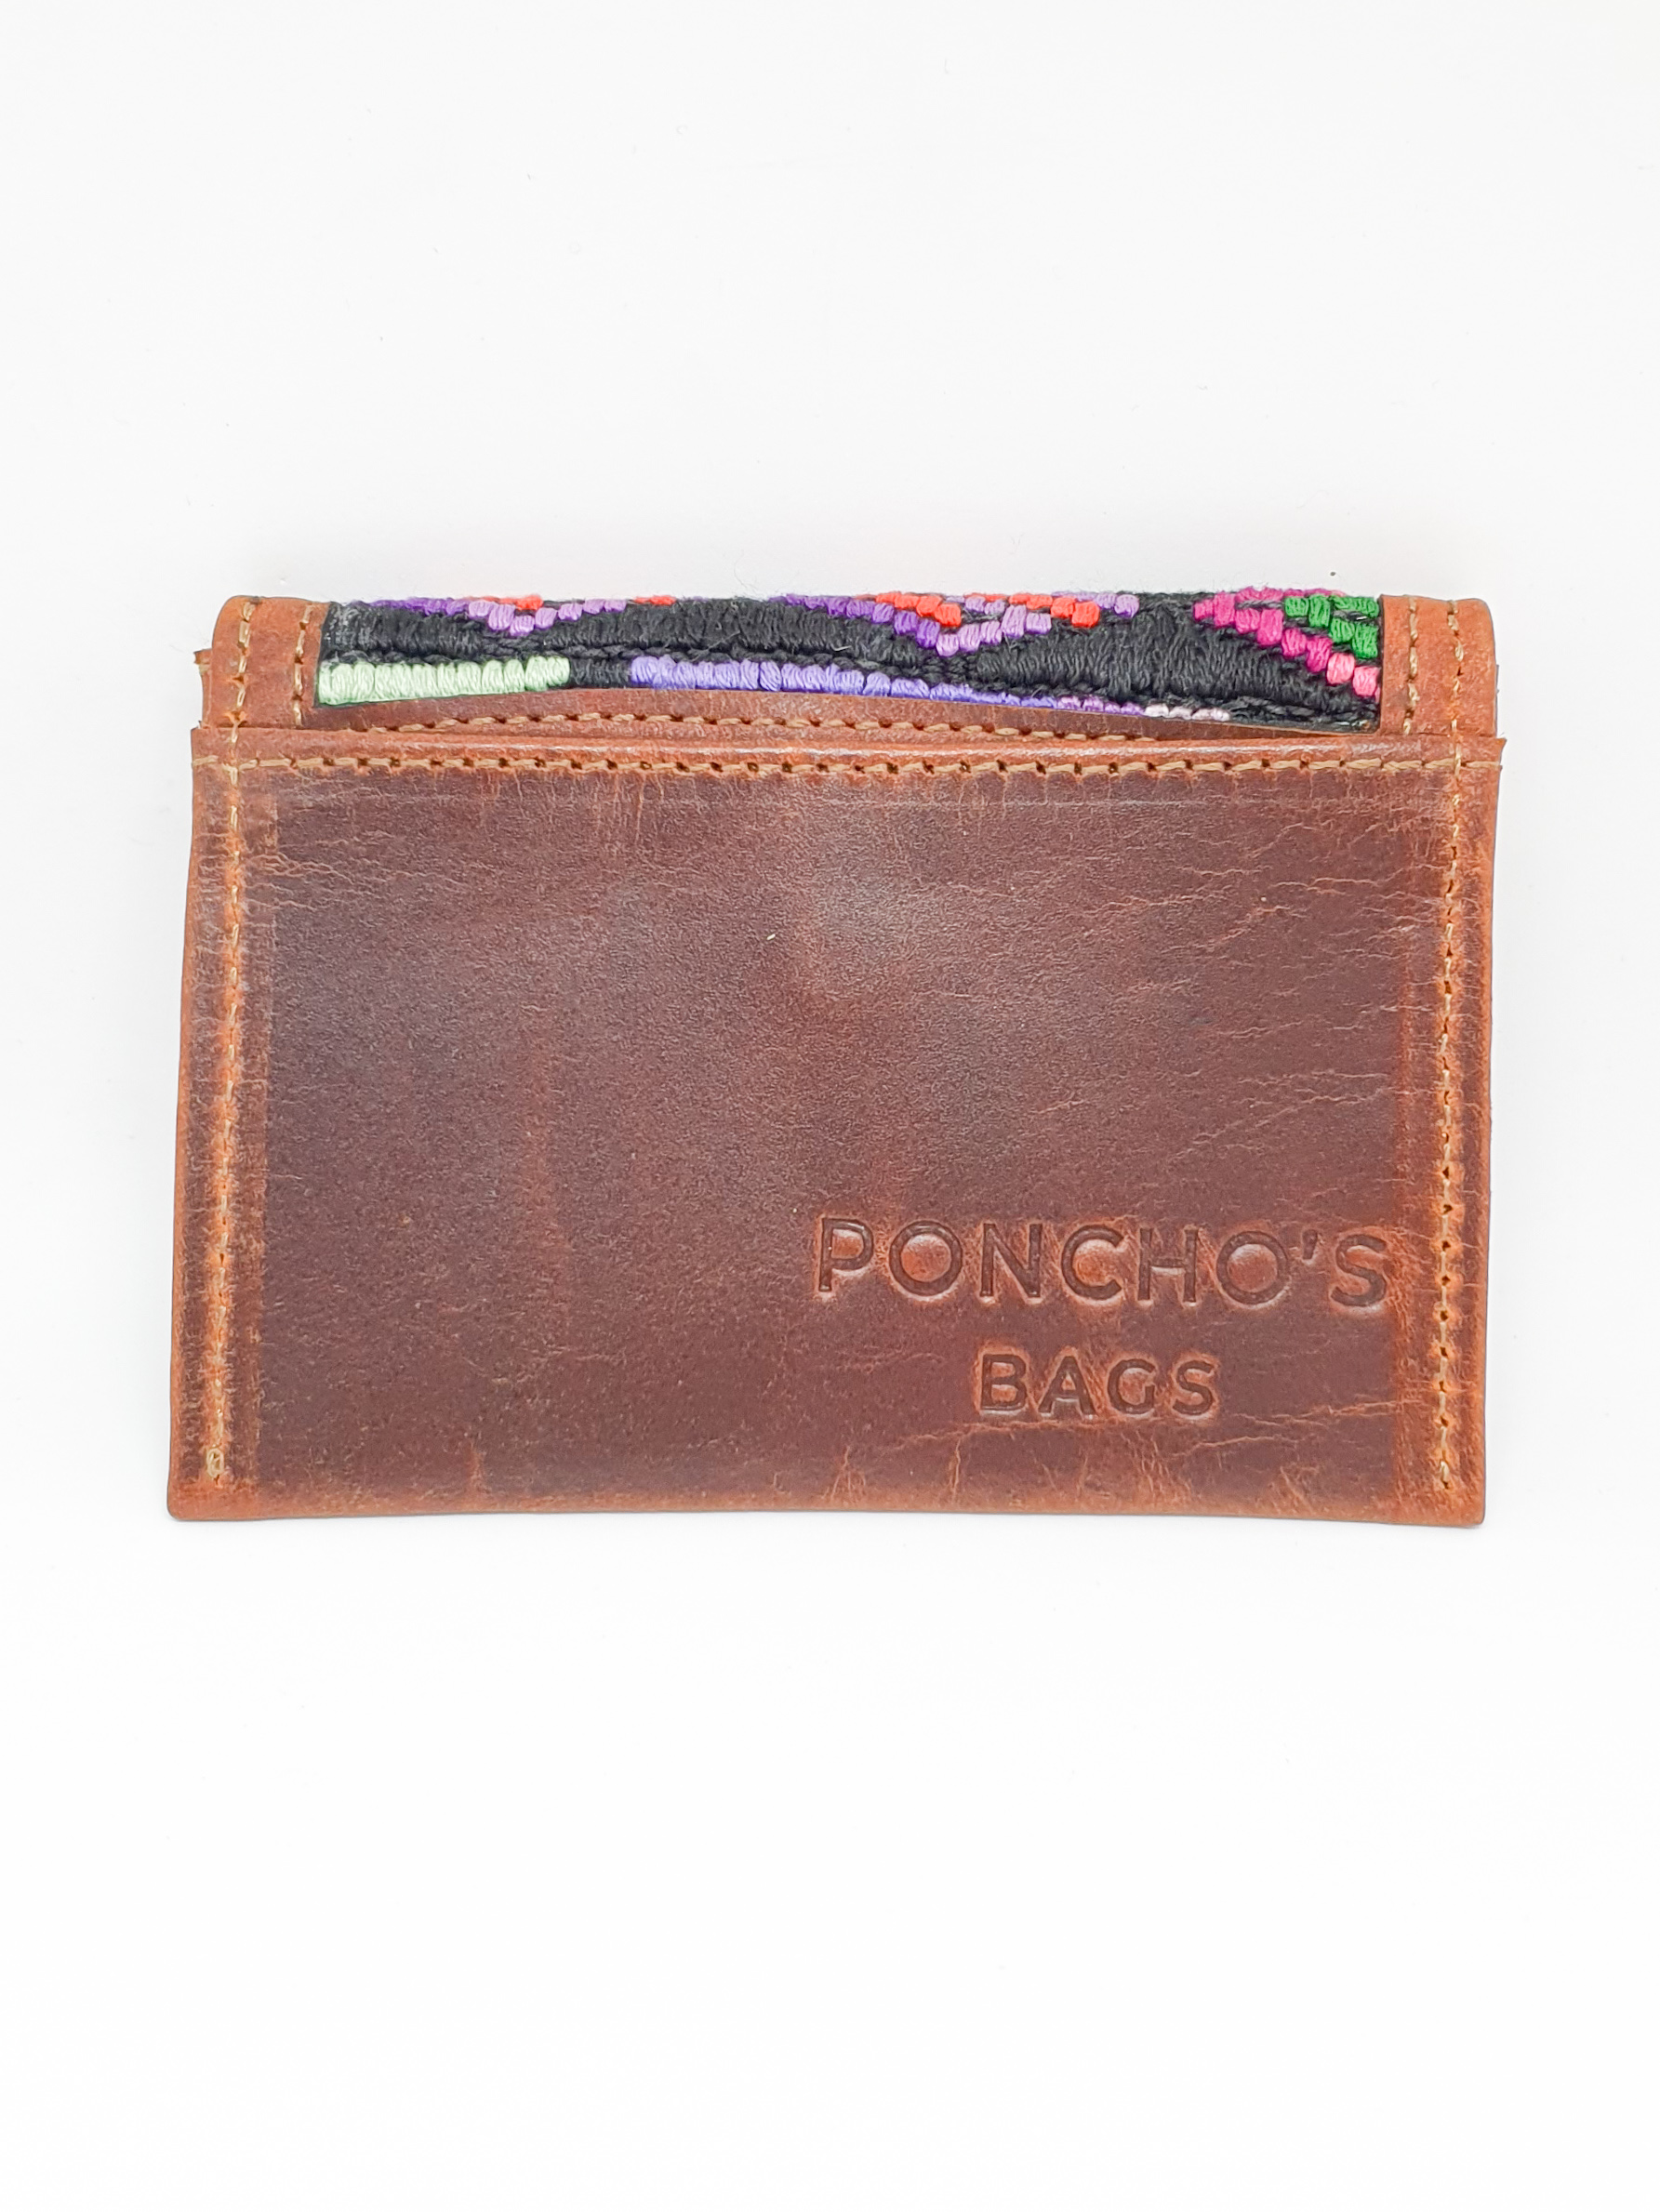 Canario Card Holder by Poncho's Bags | Inspire Me Latin America